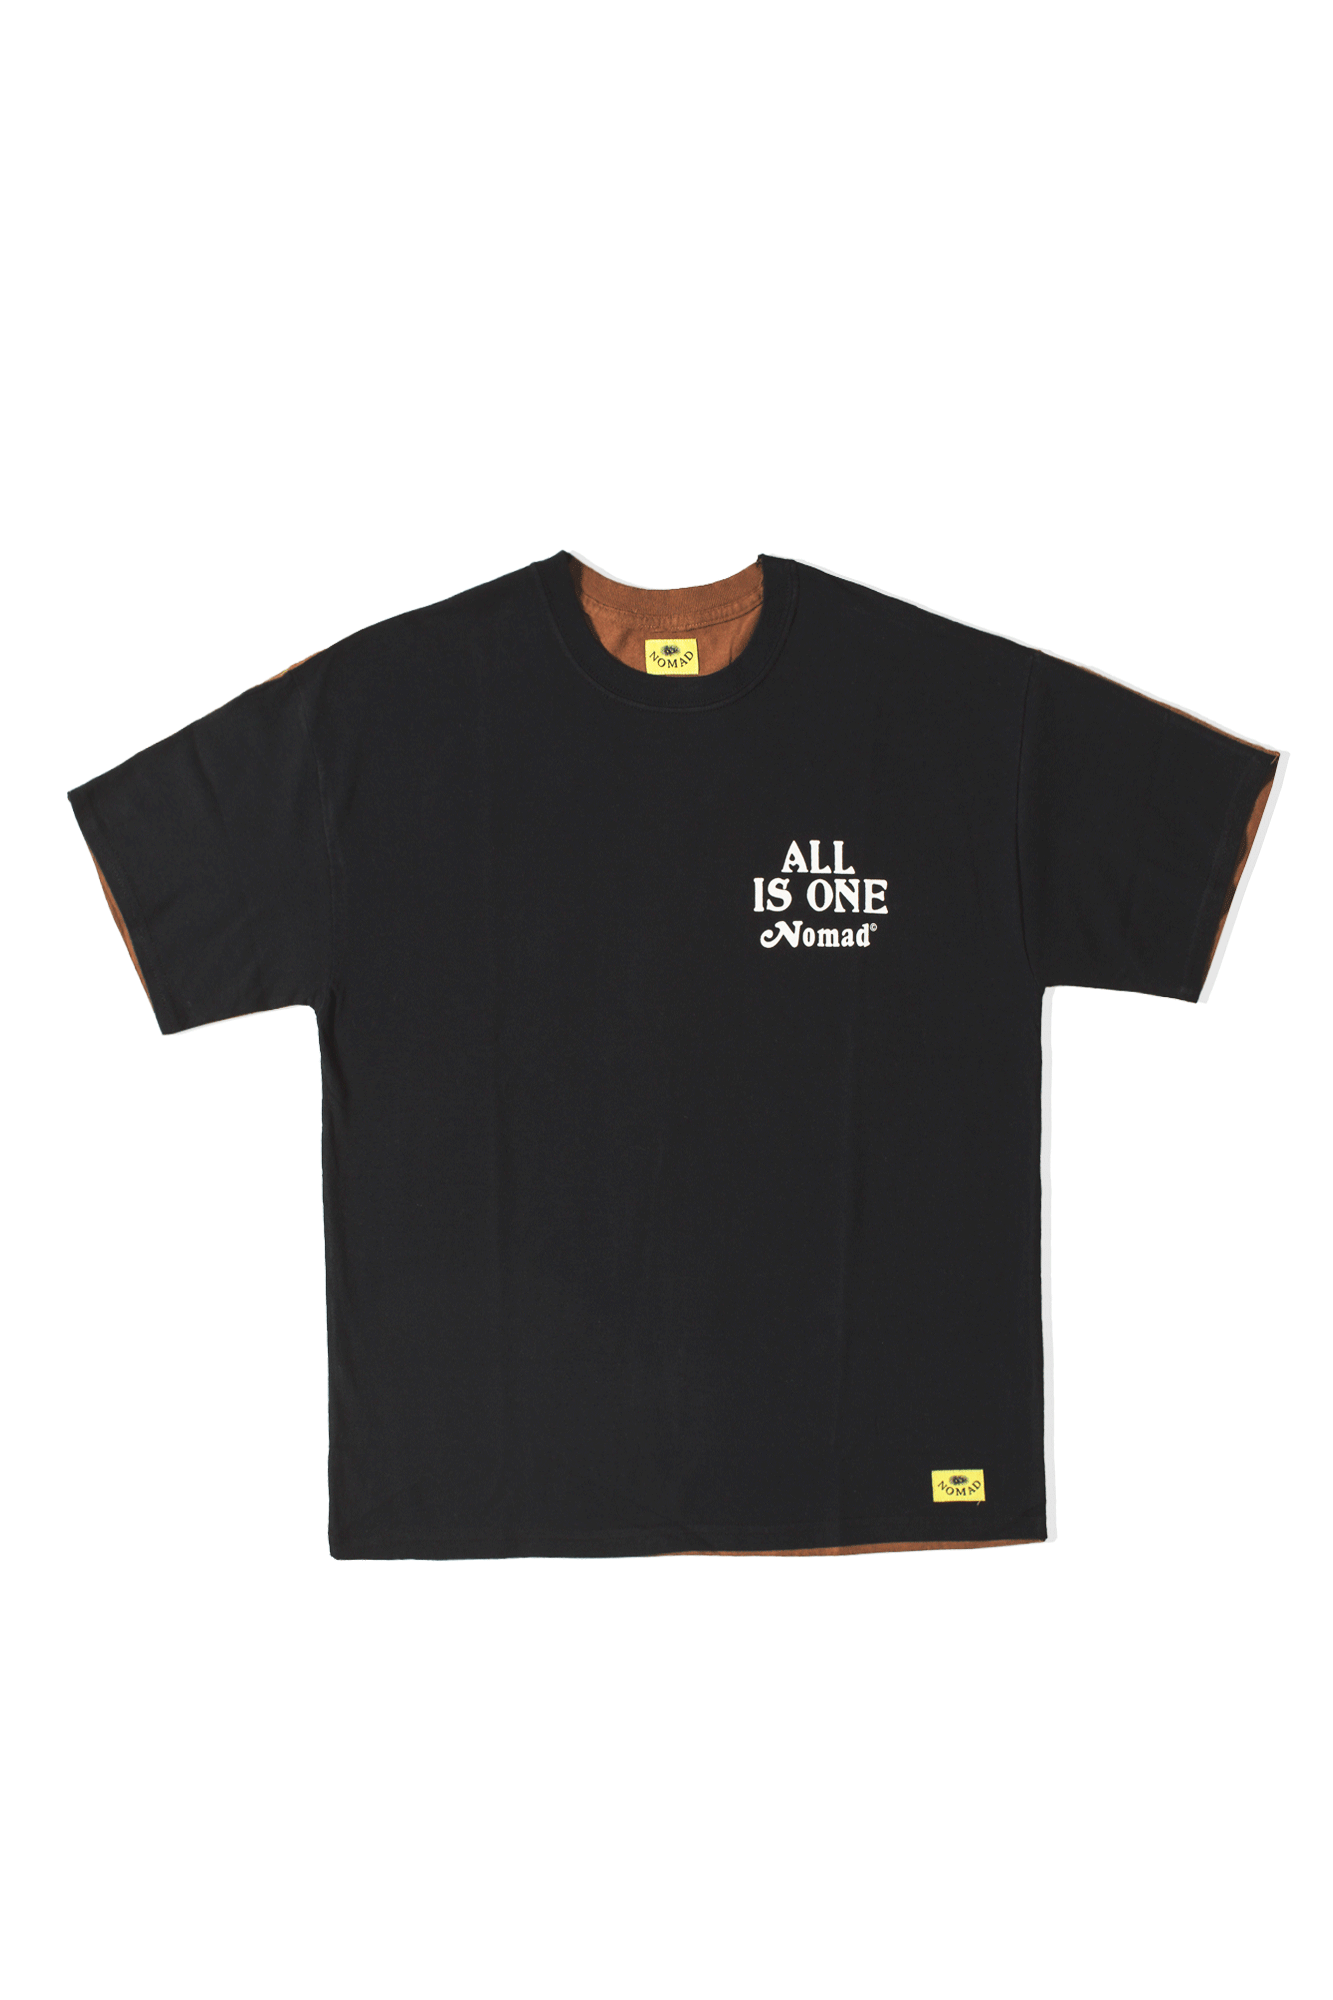 All Is One T-Shirt Black